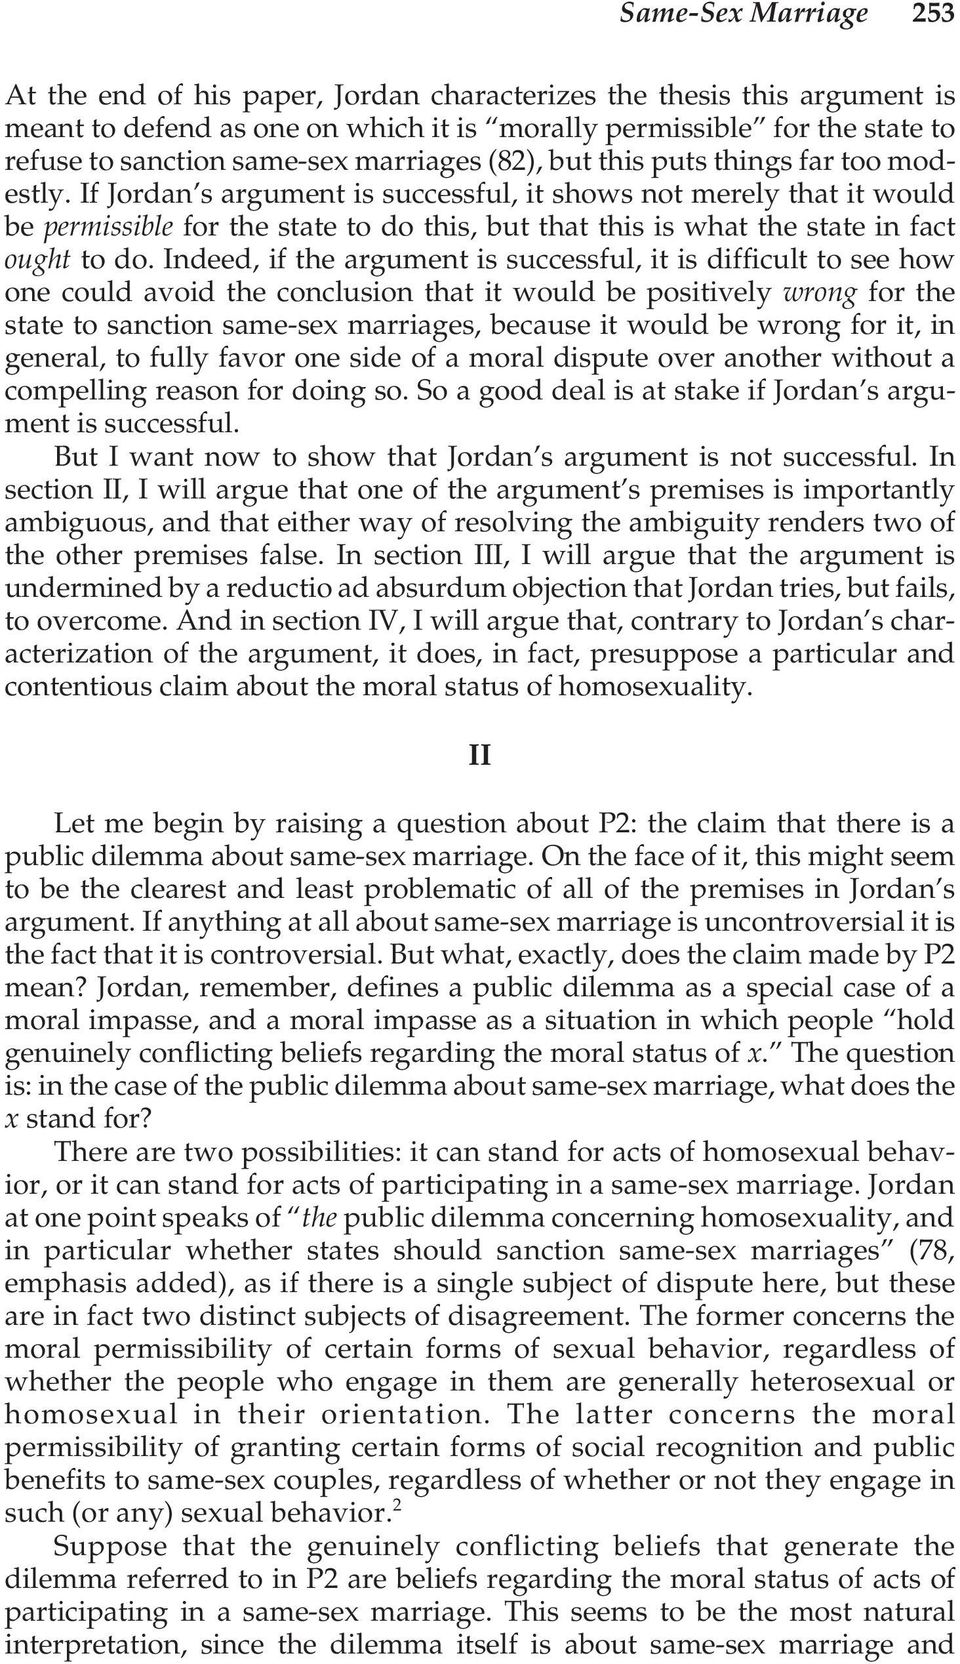 argumentative essay example same sex marriage Enjoy proficient essay writing and custom writing same sex marriage argumentative essay thesis provided by professional academic writers we value excellent academic writing and strive to provide outstanding essay writing.